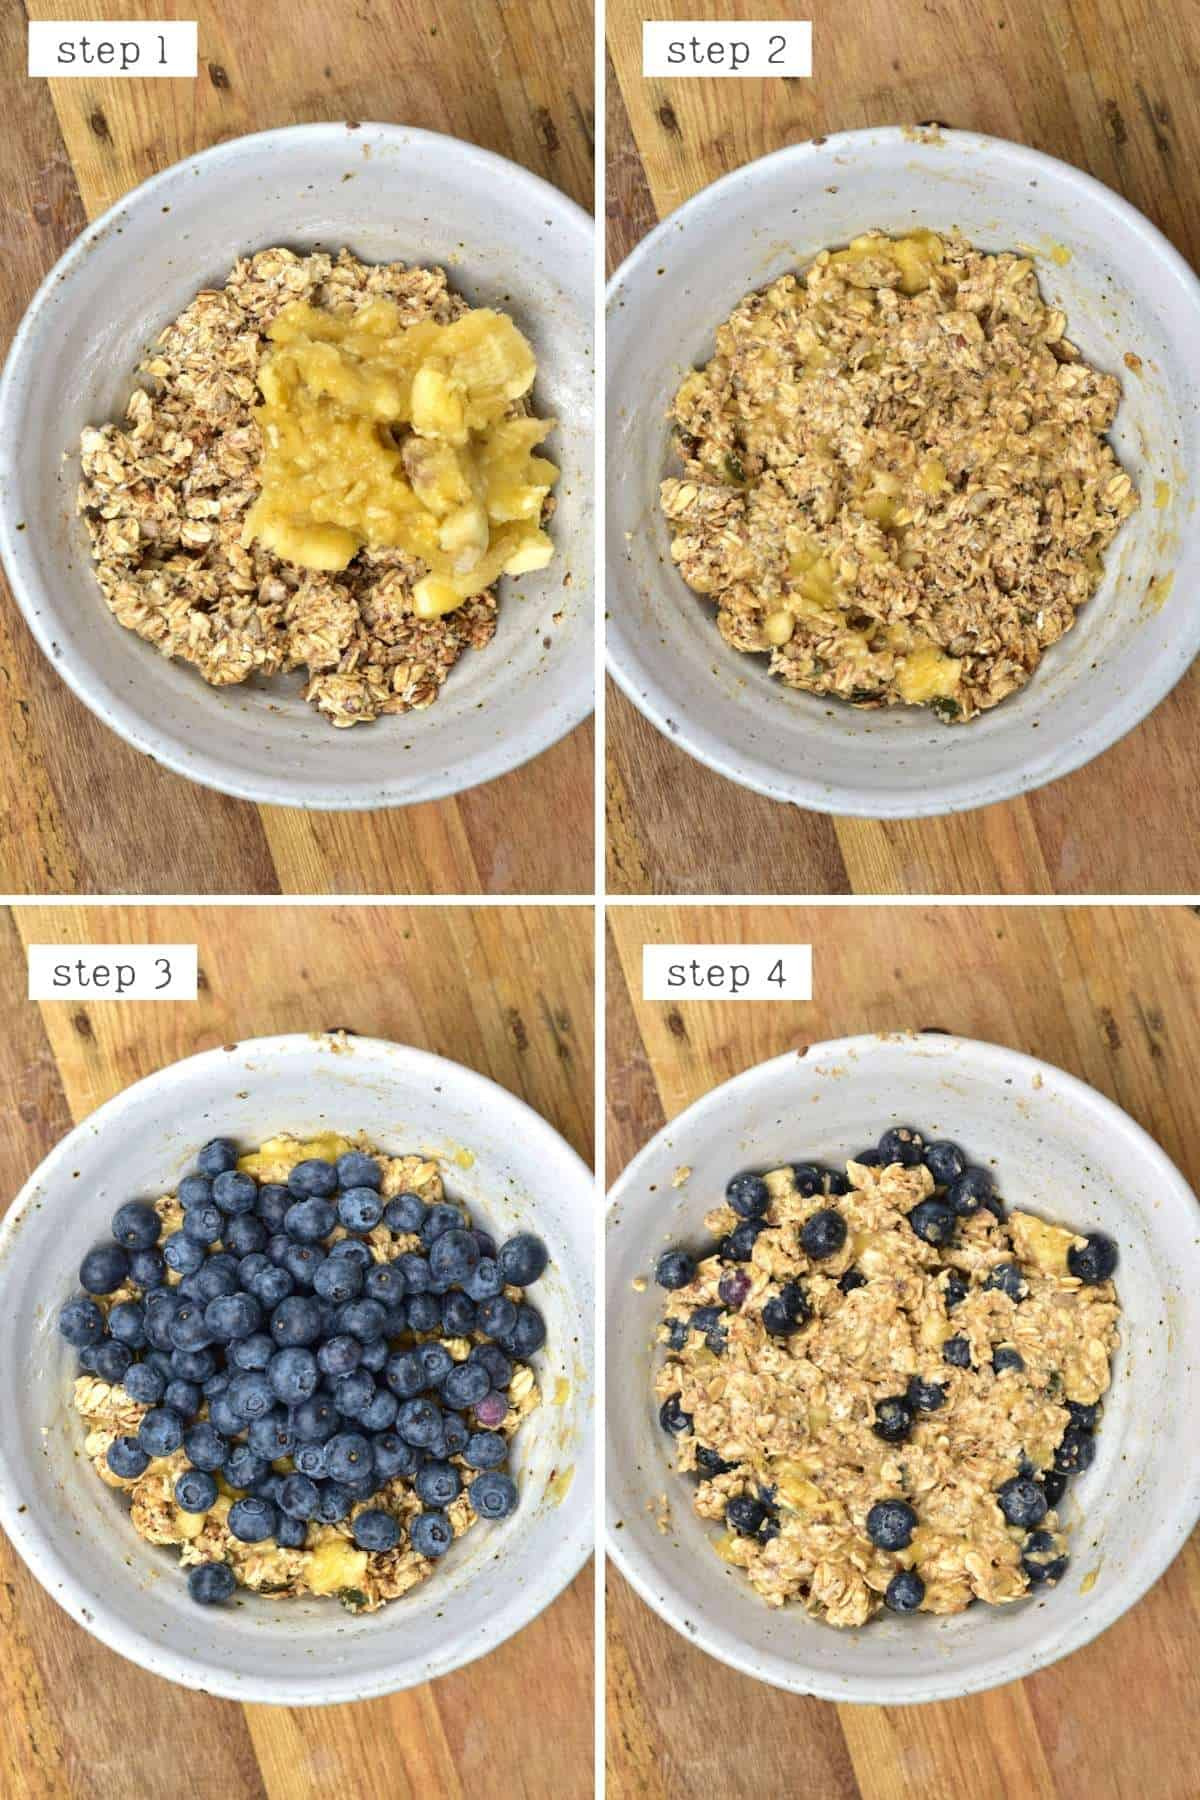 Steps for mixing oats with banana and blueberries